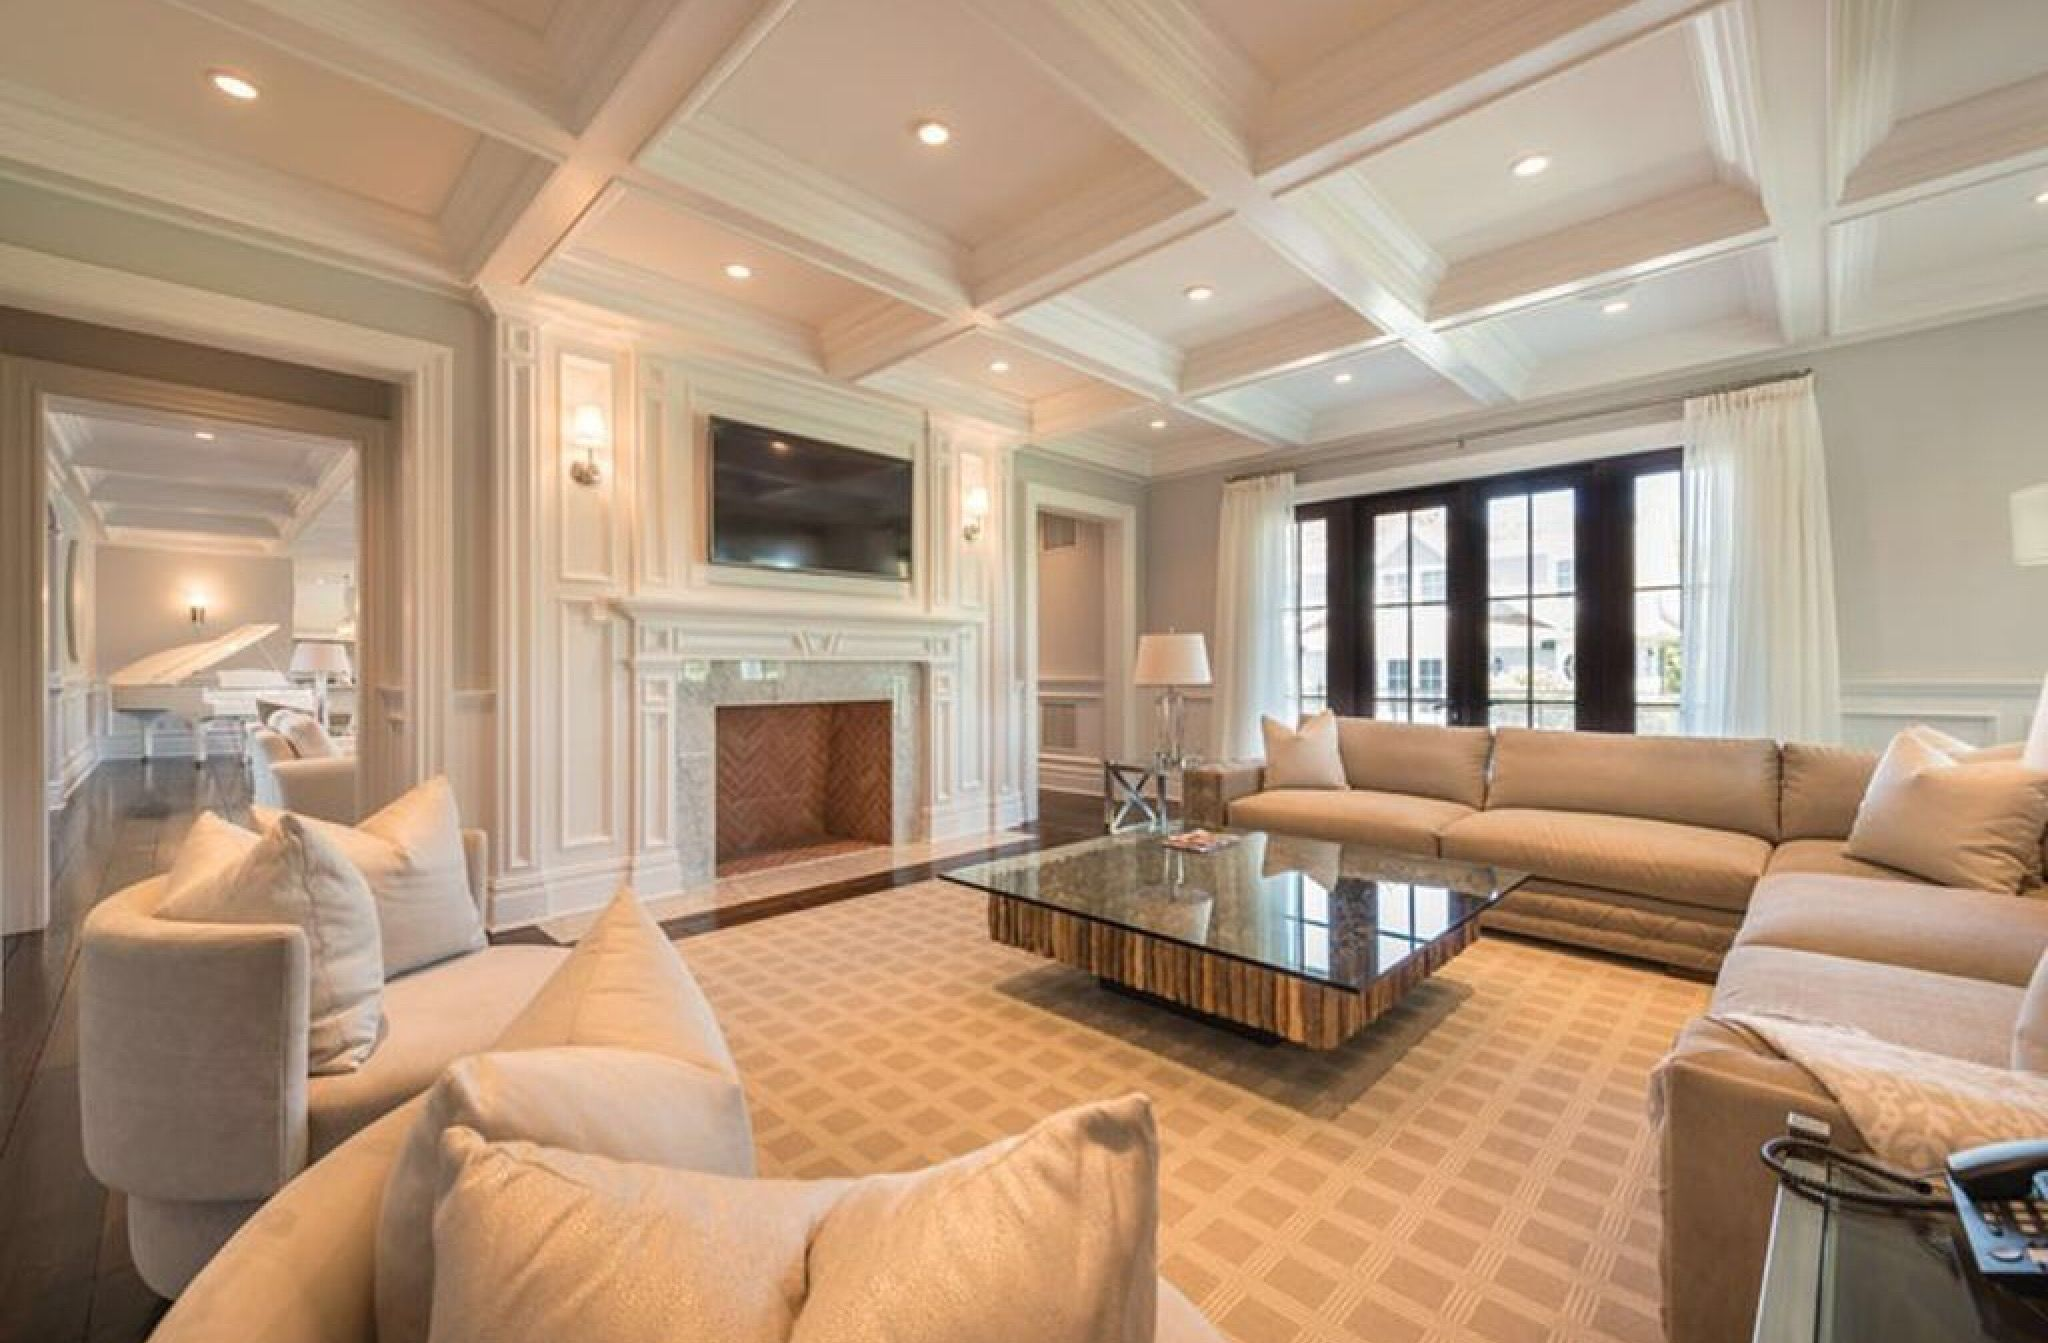 Pin By Minnie On Coffered Ceilings Millwork Plaster - Pinterest